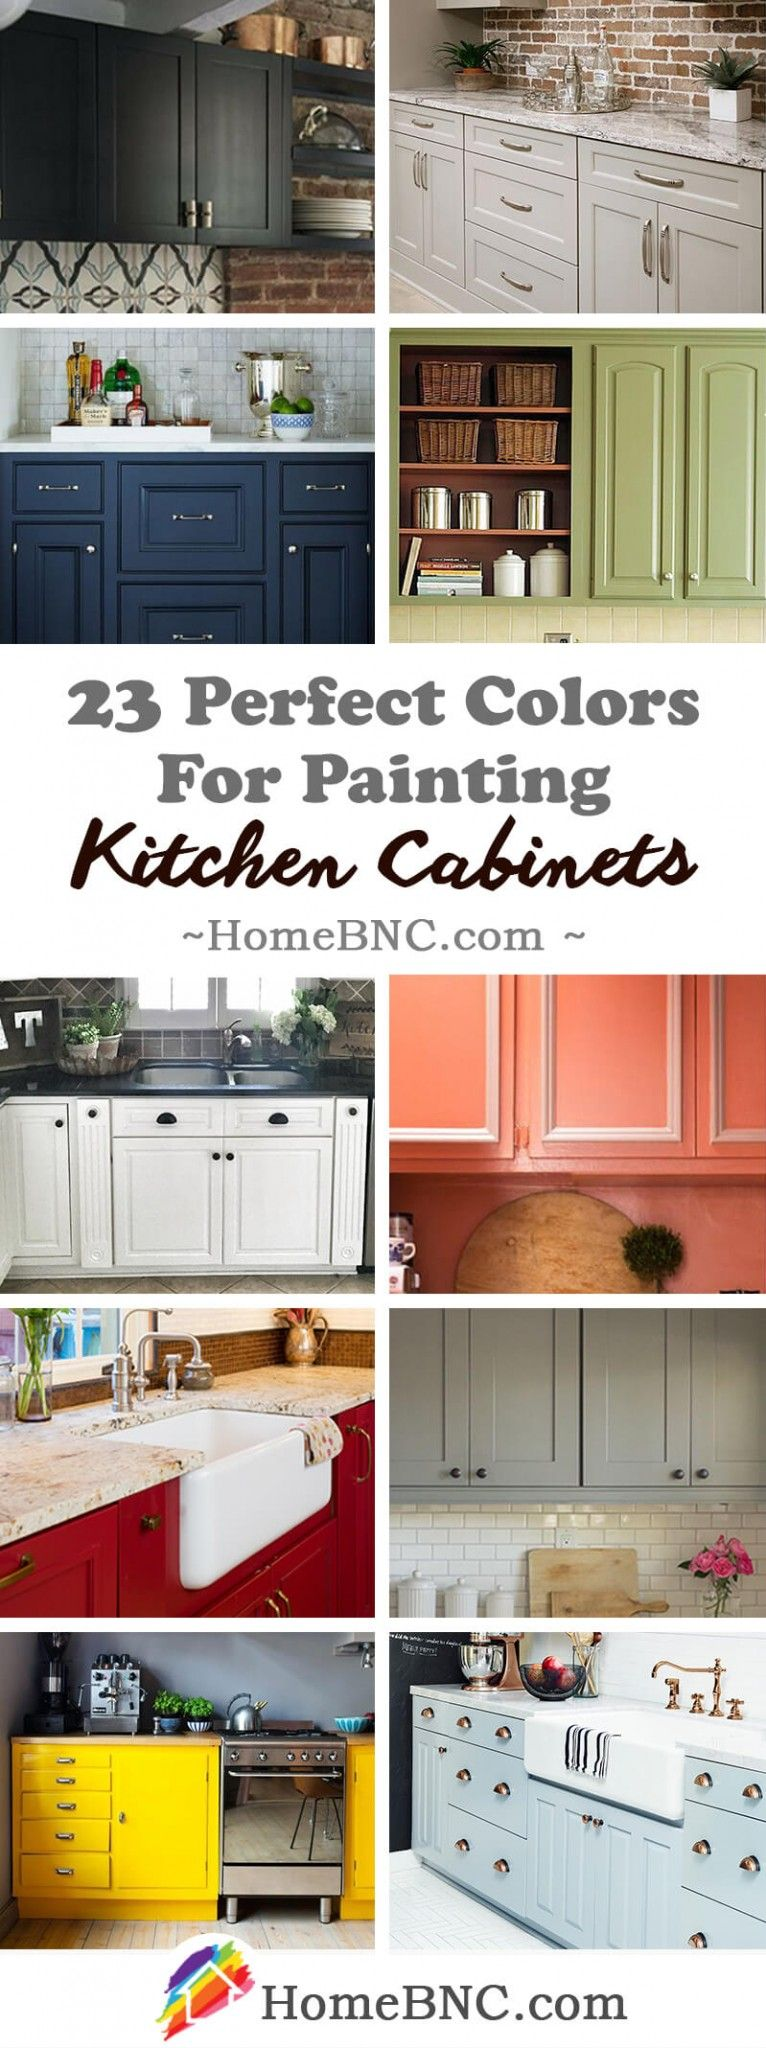 perfect color ideas for painting kitchen cabinets that will add